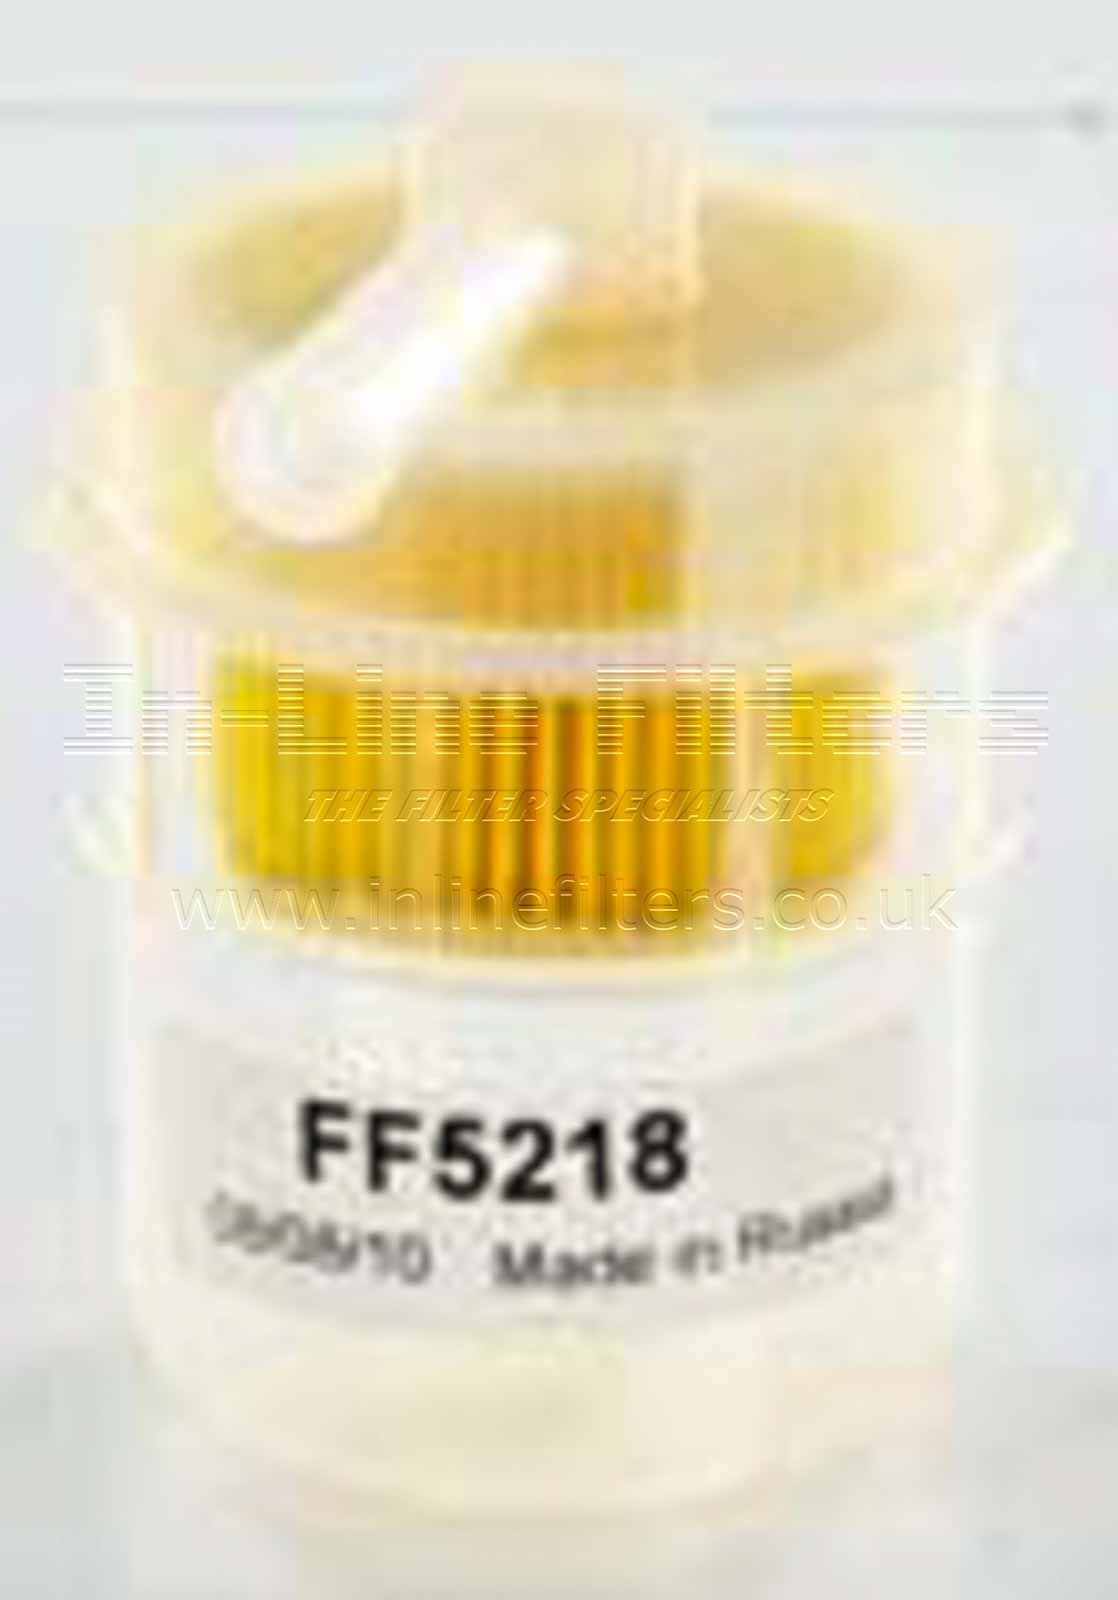 FFG-FF5218 FILTER-Fuel(Brand Specific-Fleetguard FF5218) - Click Image to Close